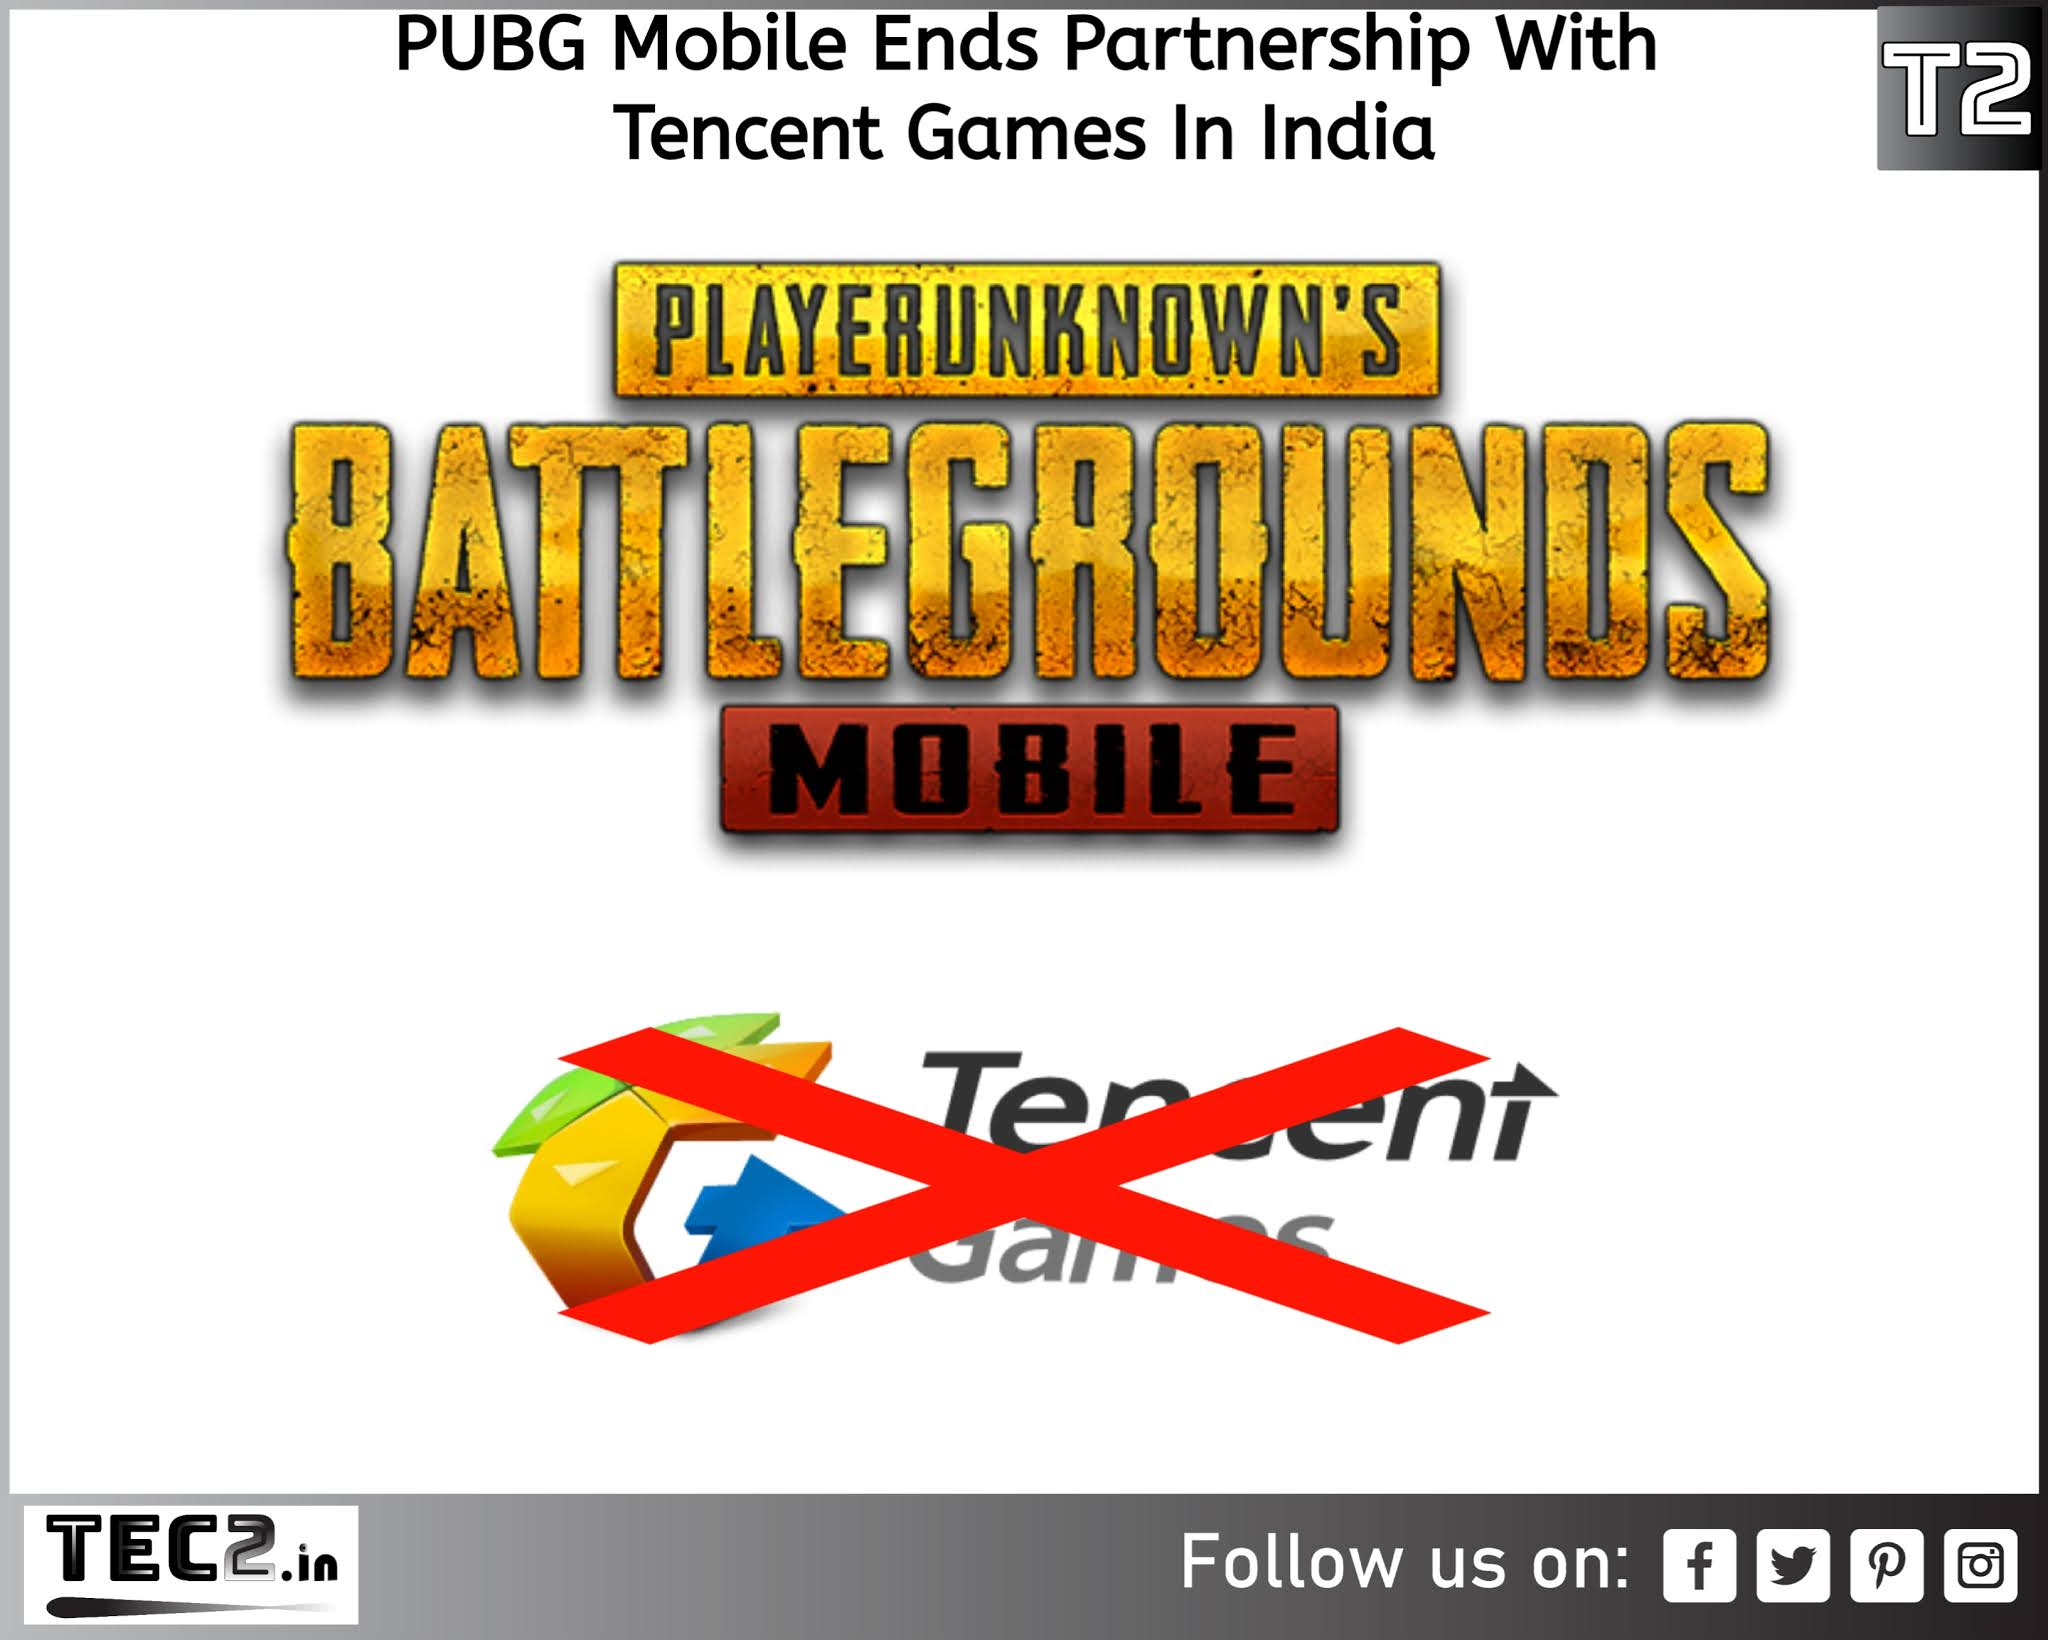 PUBG Mobile cuts off with tencent